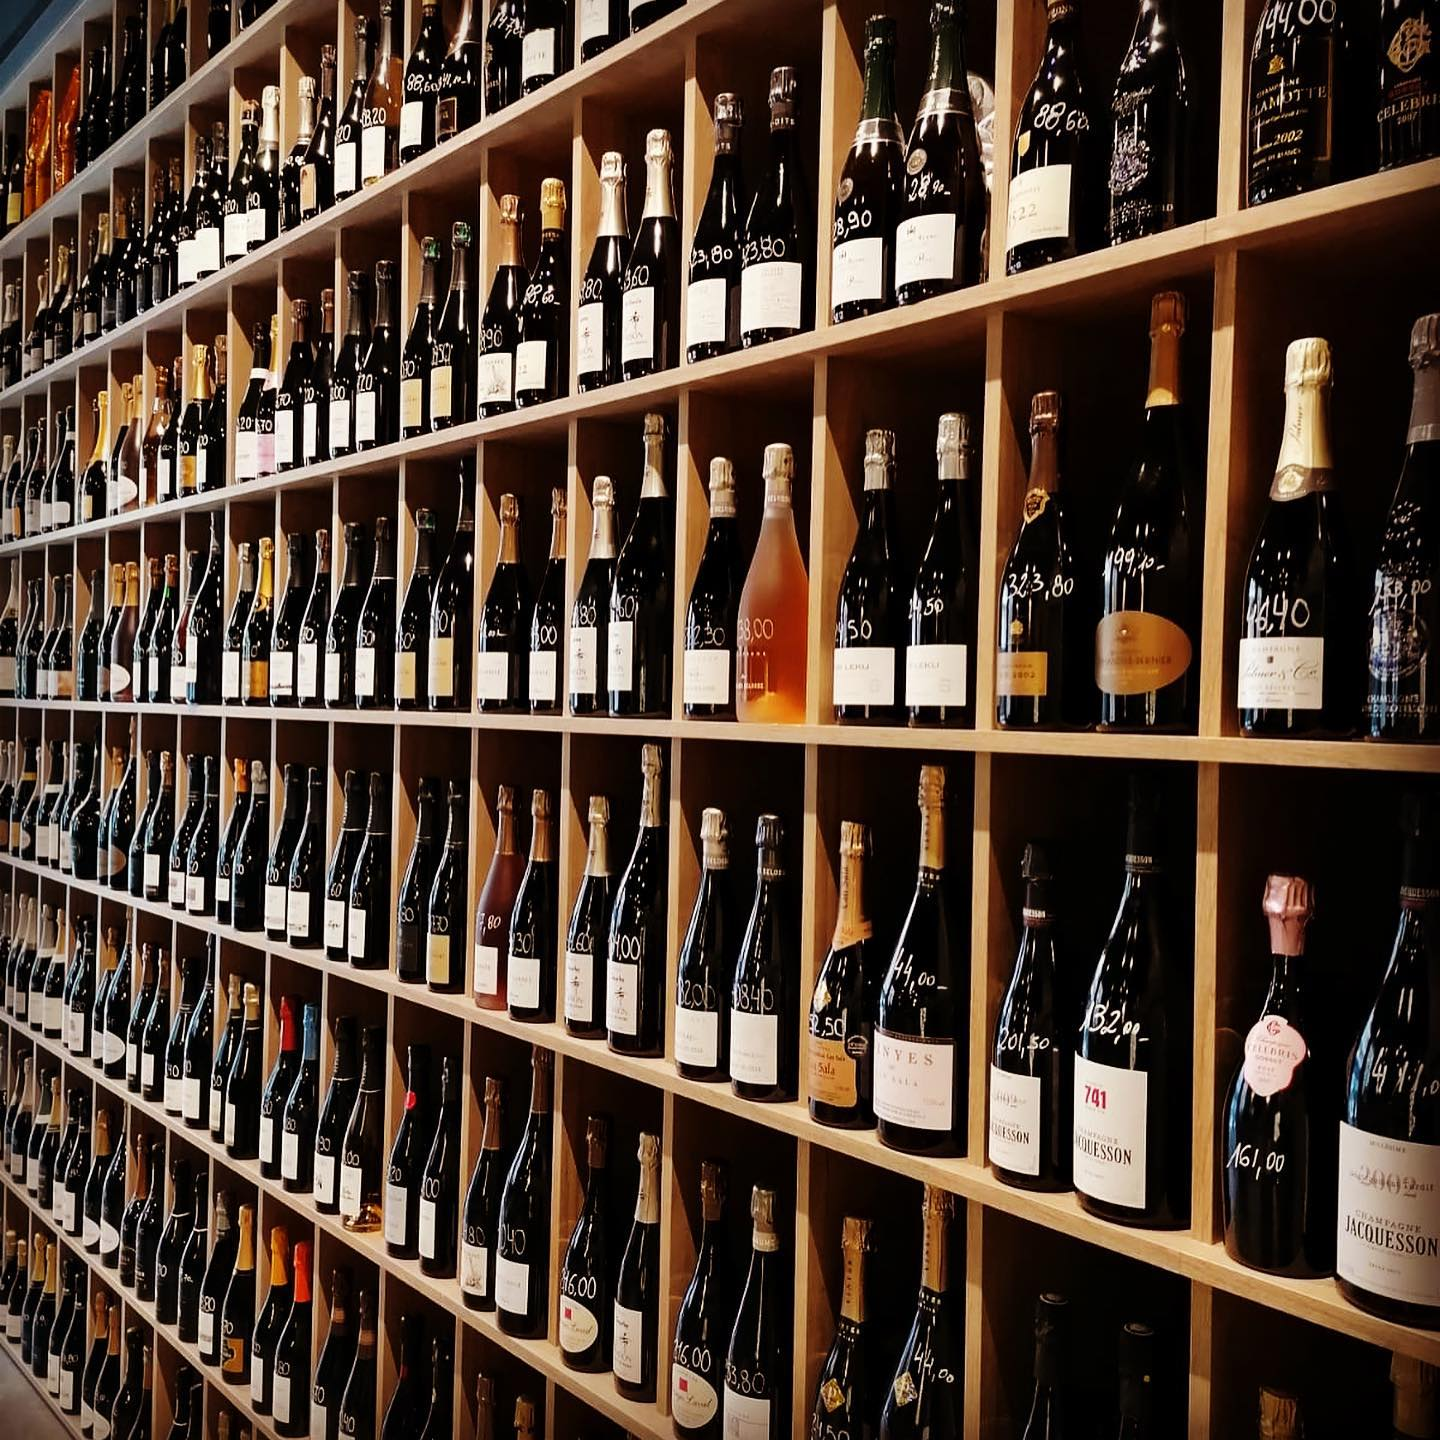 Curdelon's Chamapagne TOP selection